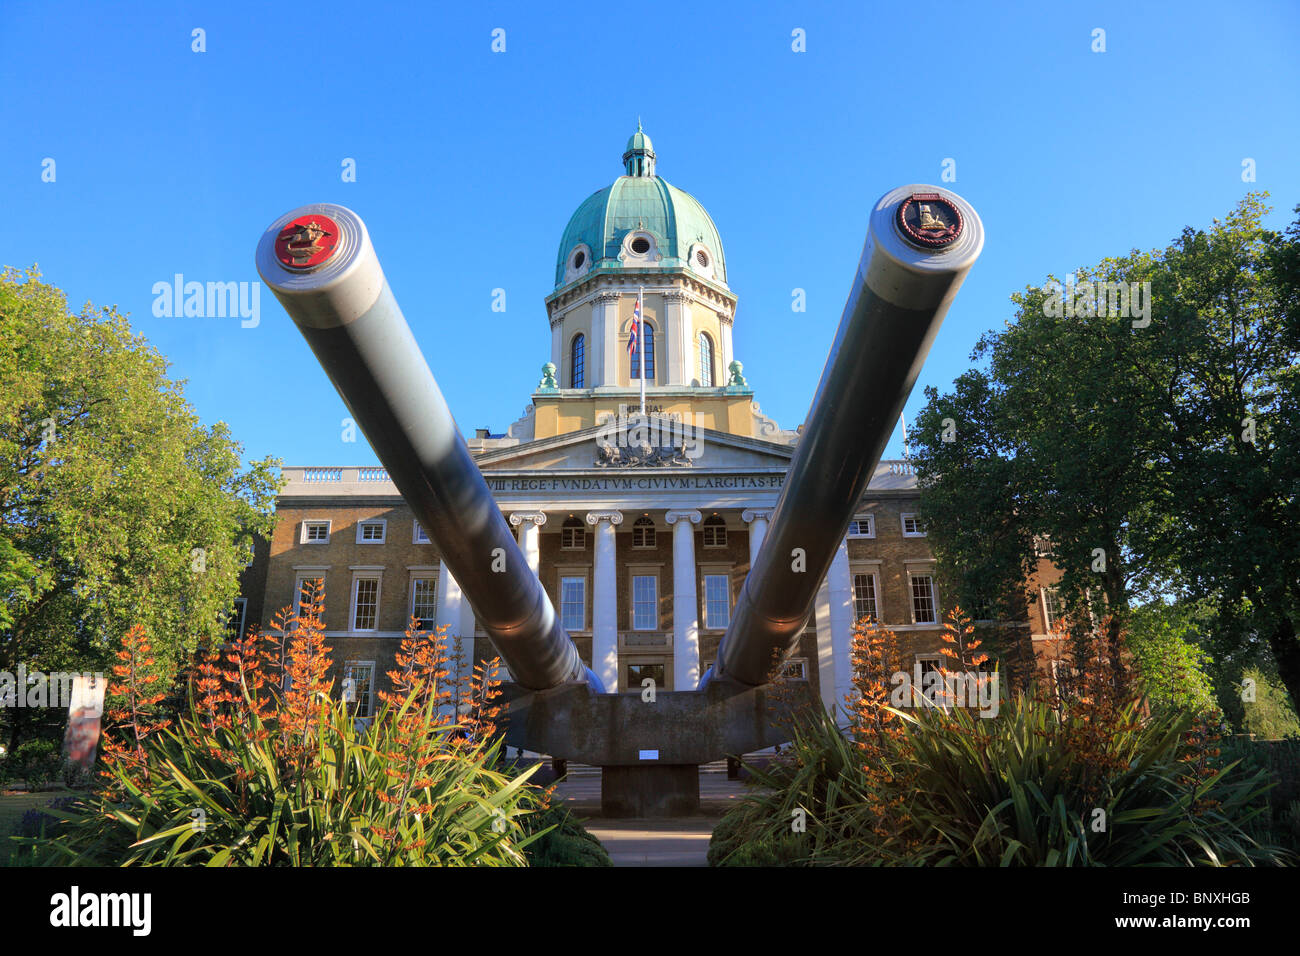 The Imperial War Museum at Lambeth London - Stock Image